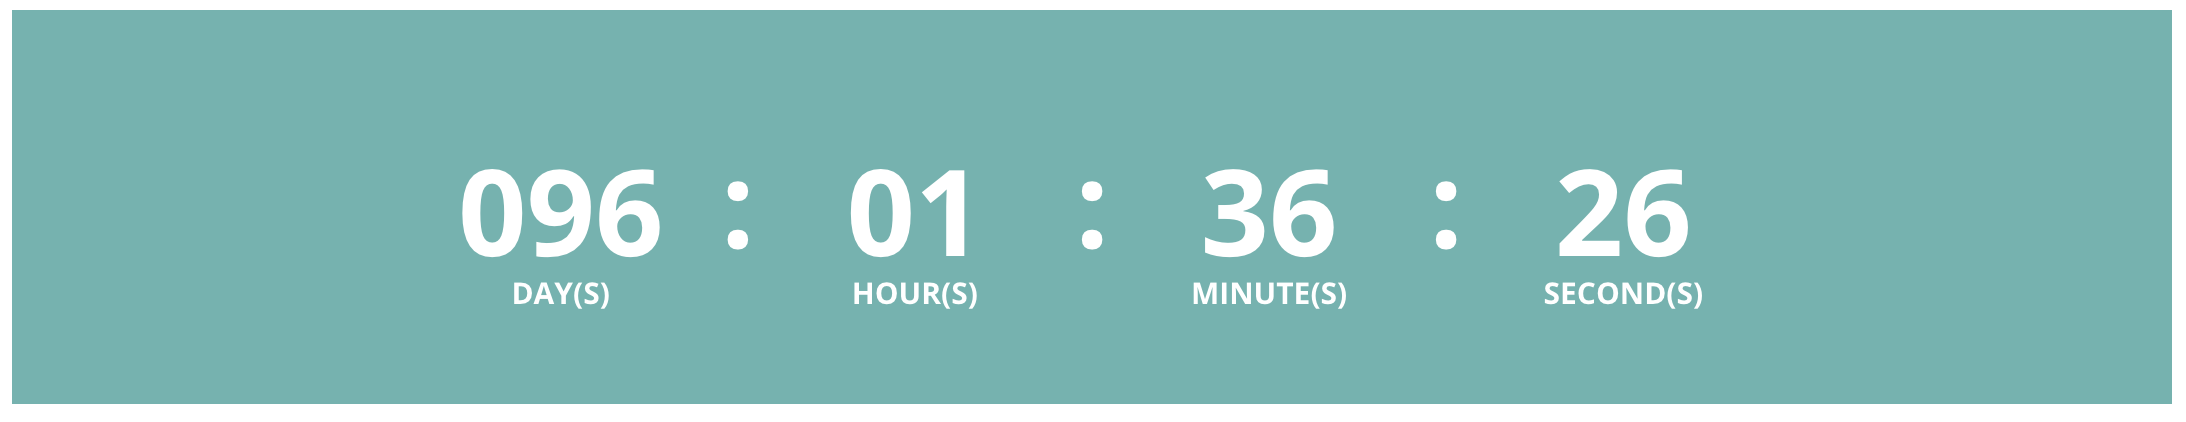 countdown-timer-with-animated-gradient-in-progress